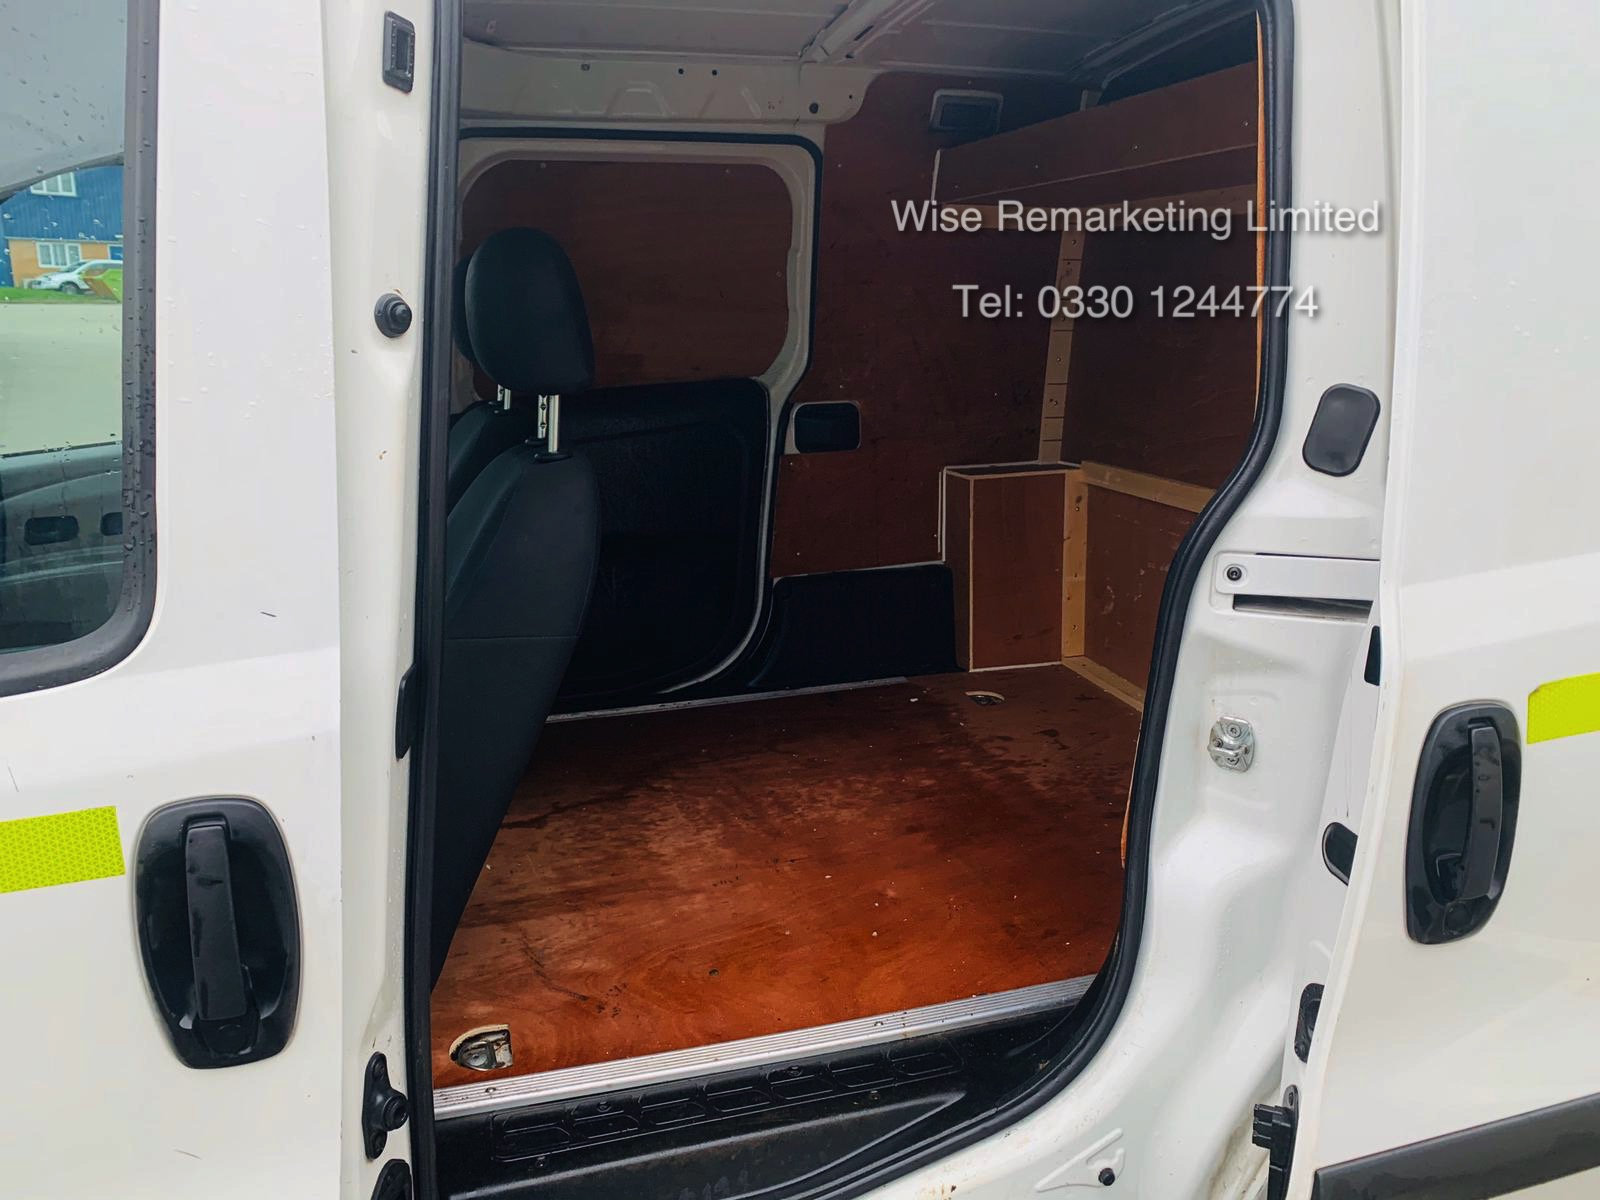 Vauxhall Combo 2300 1.6 CDTI Long - 2016 Model - 1 Keeper From New - Twin Doors - Ply Lined - Image 10 of 21